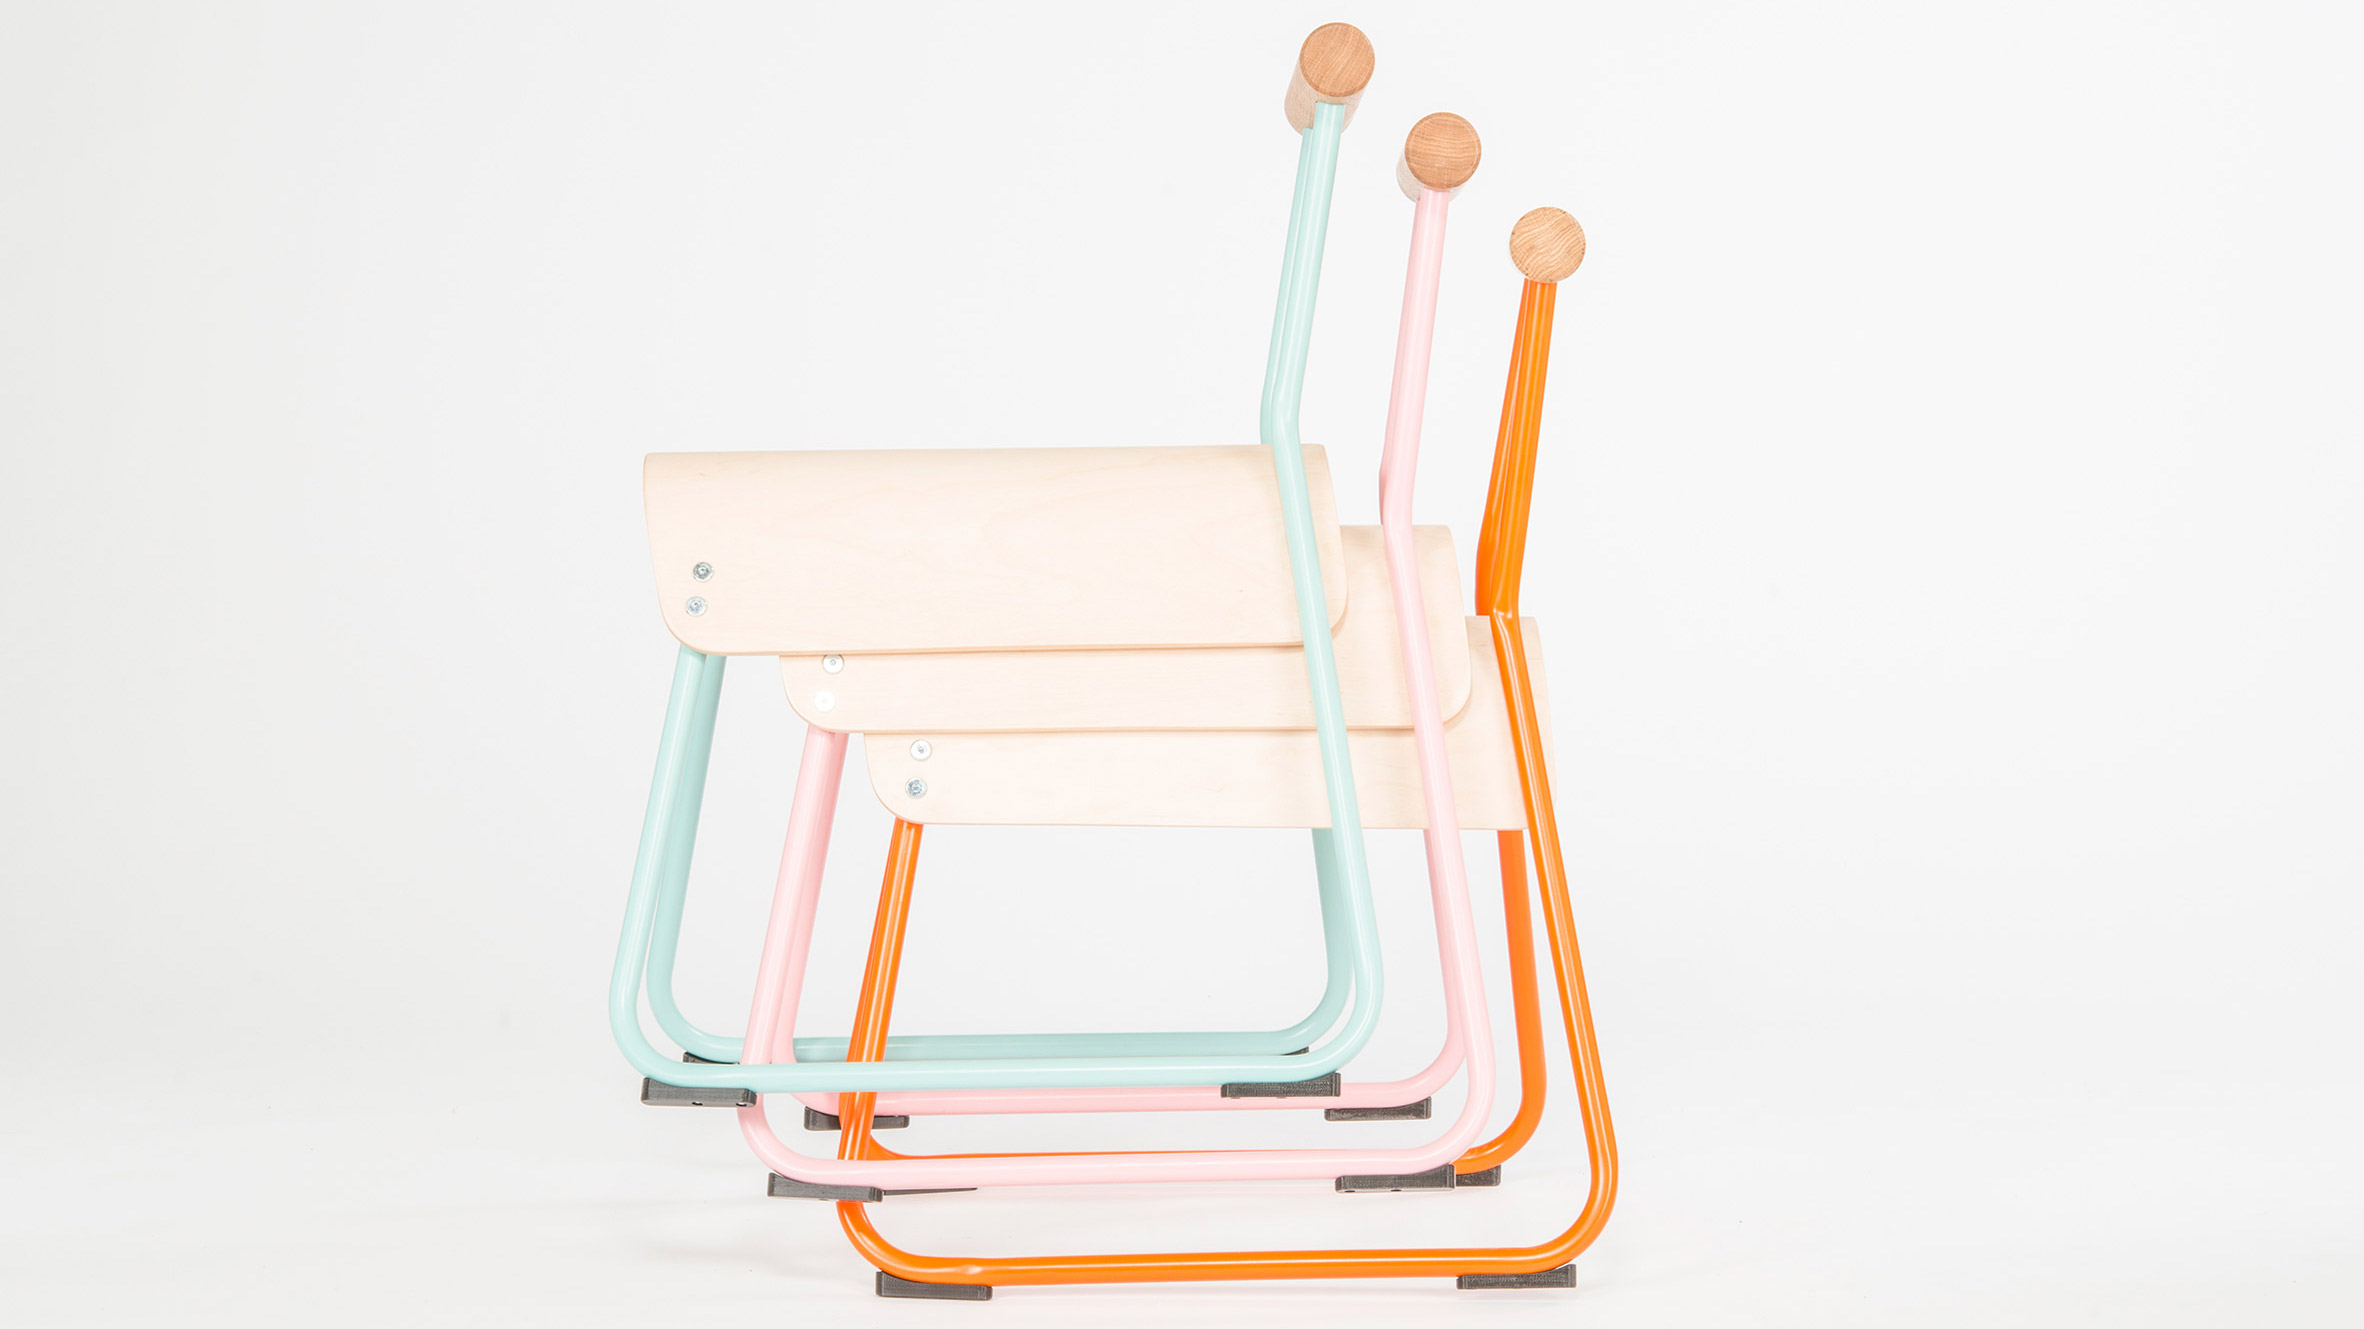 Masahiko Ito redesigns school chair to improve posture and tackle fidgeting